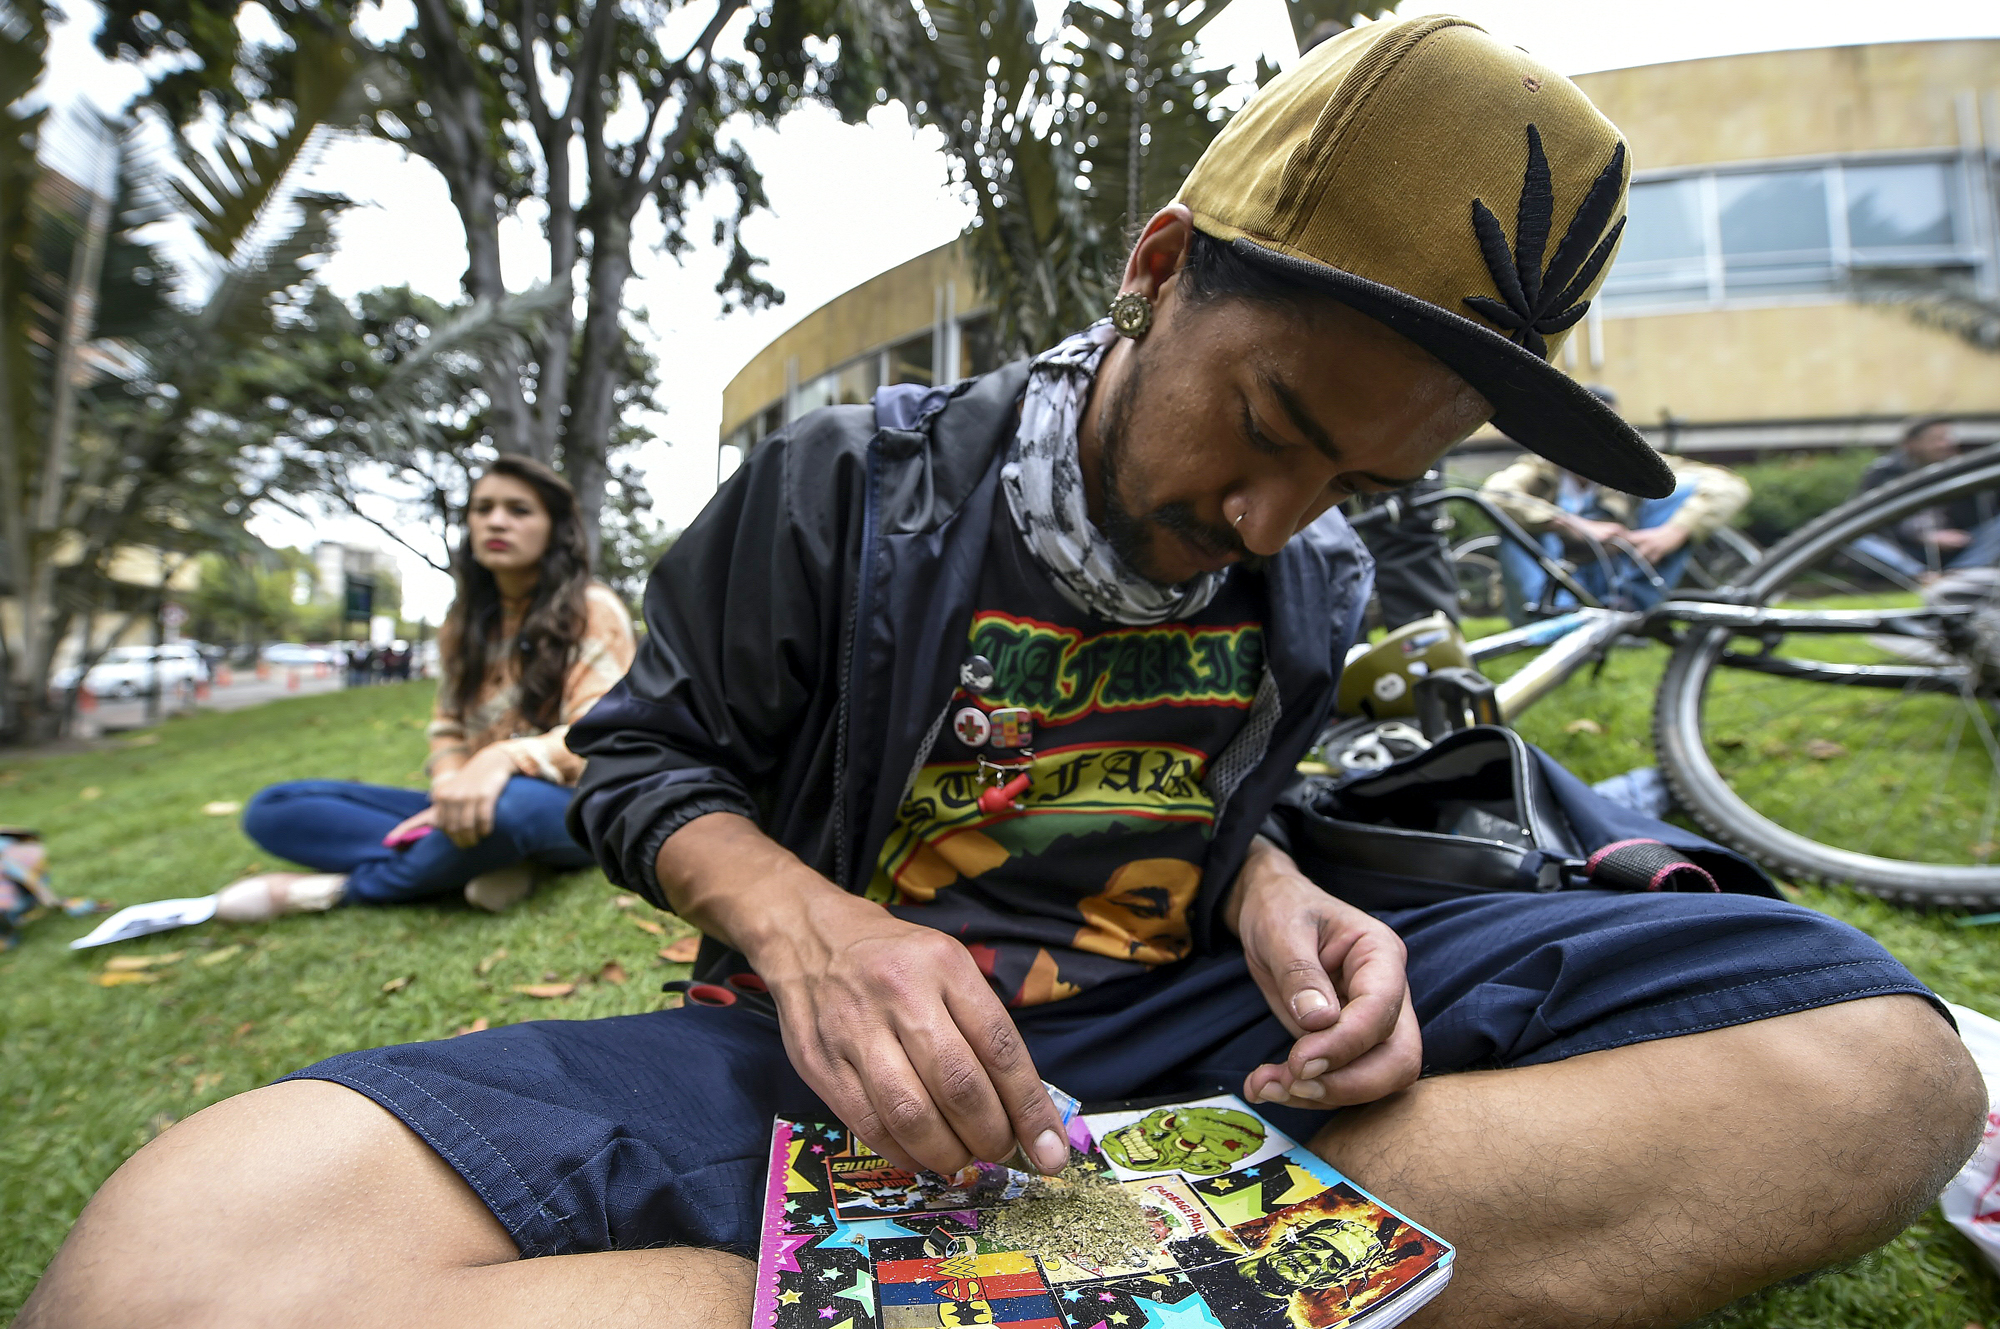 ColumbiaCannabis This city has the cheapest weed in the world